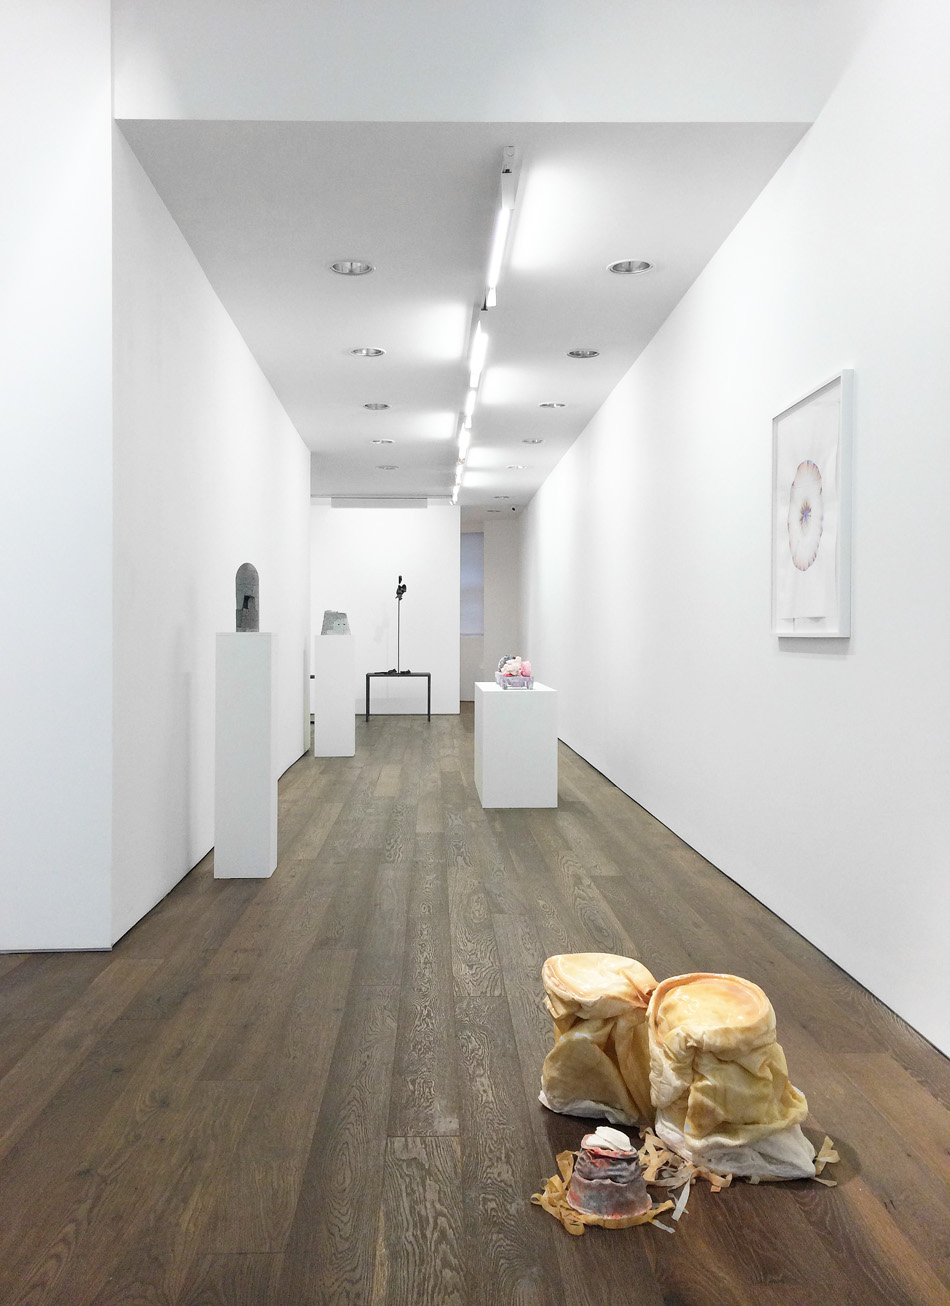 Installation shot at 'Finding Form', Art First, London 2015